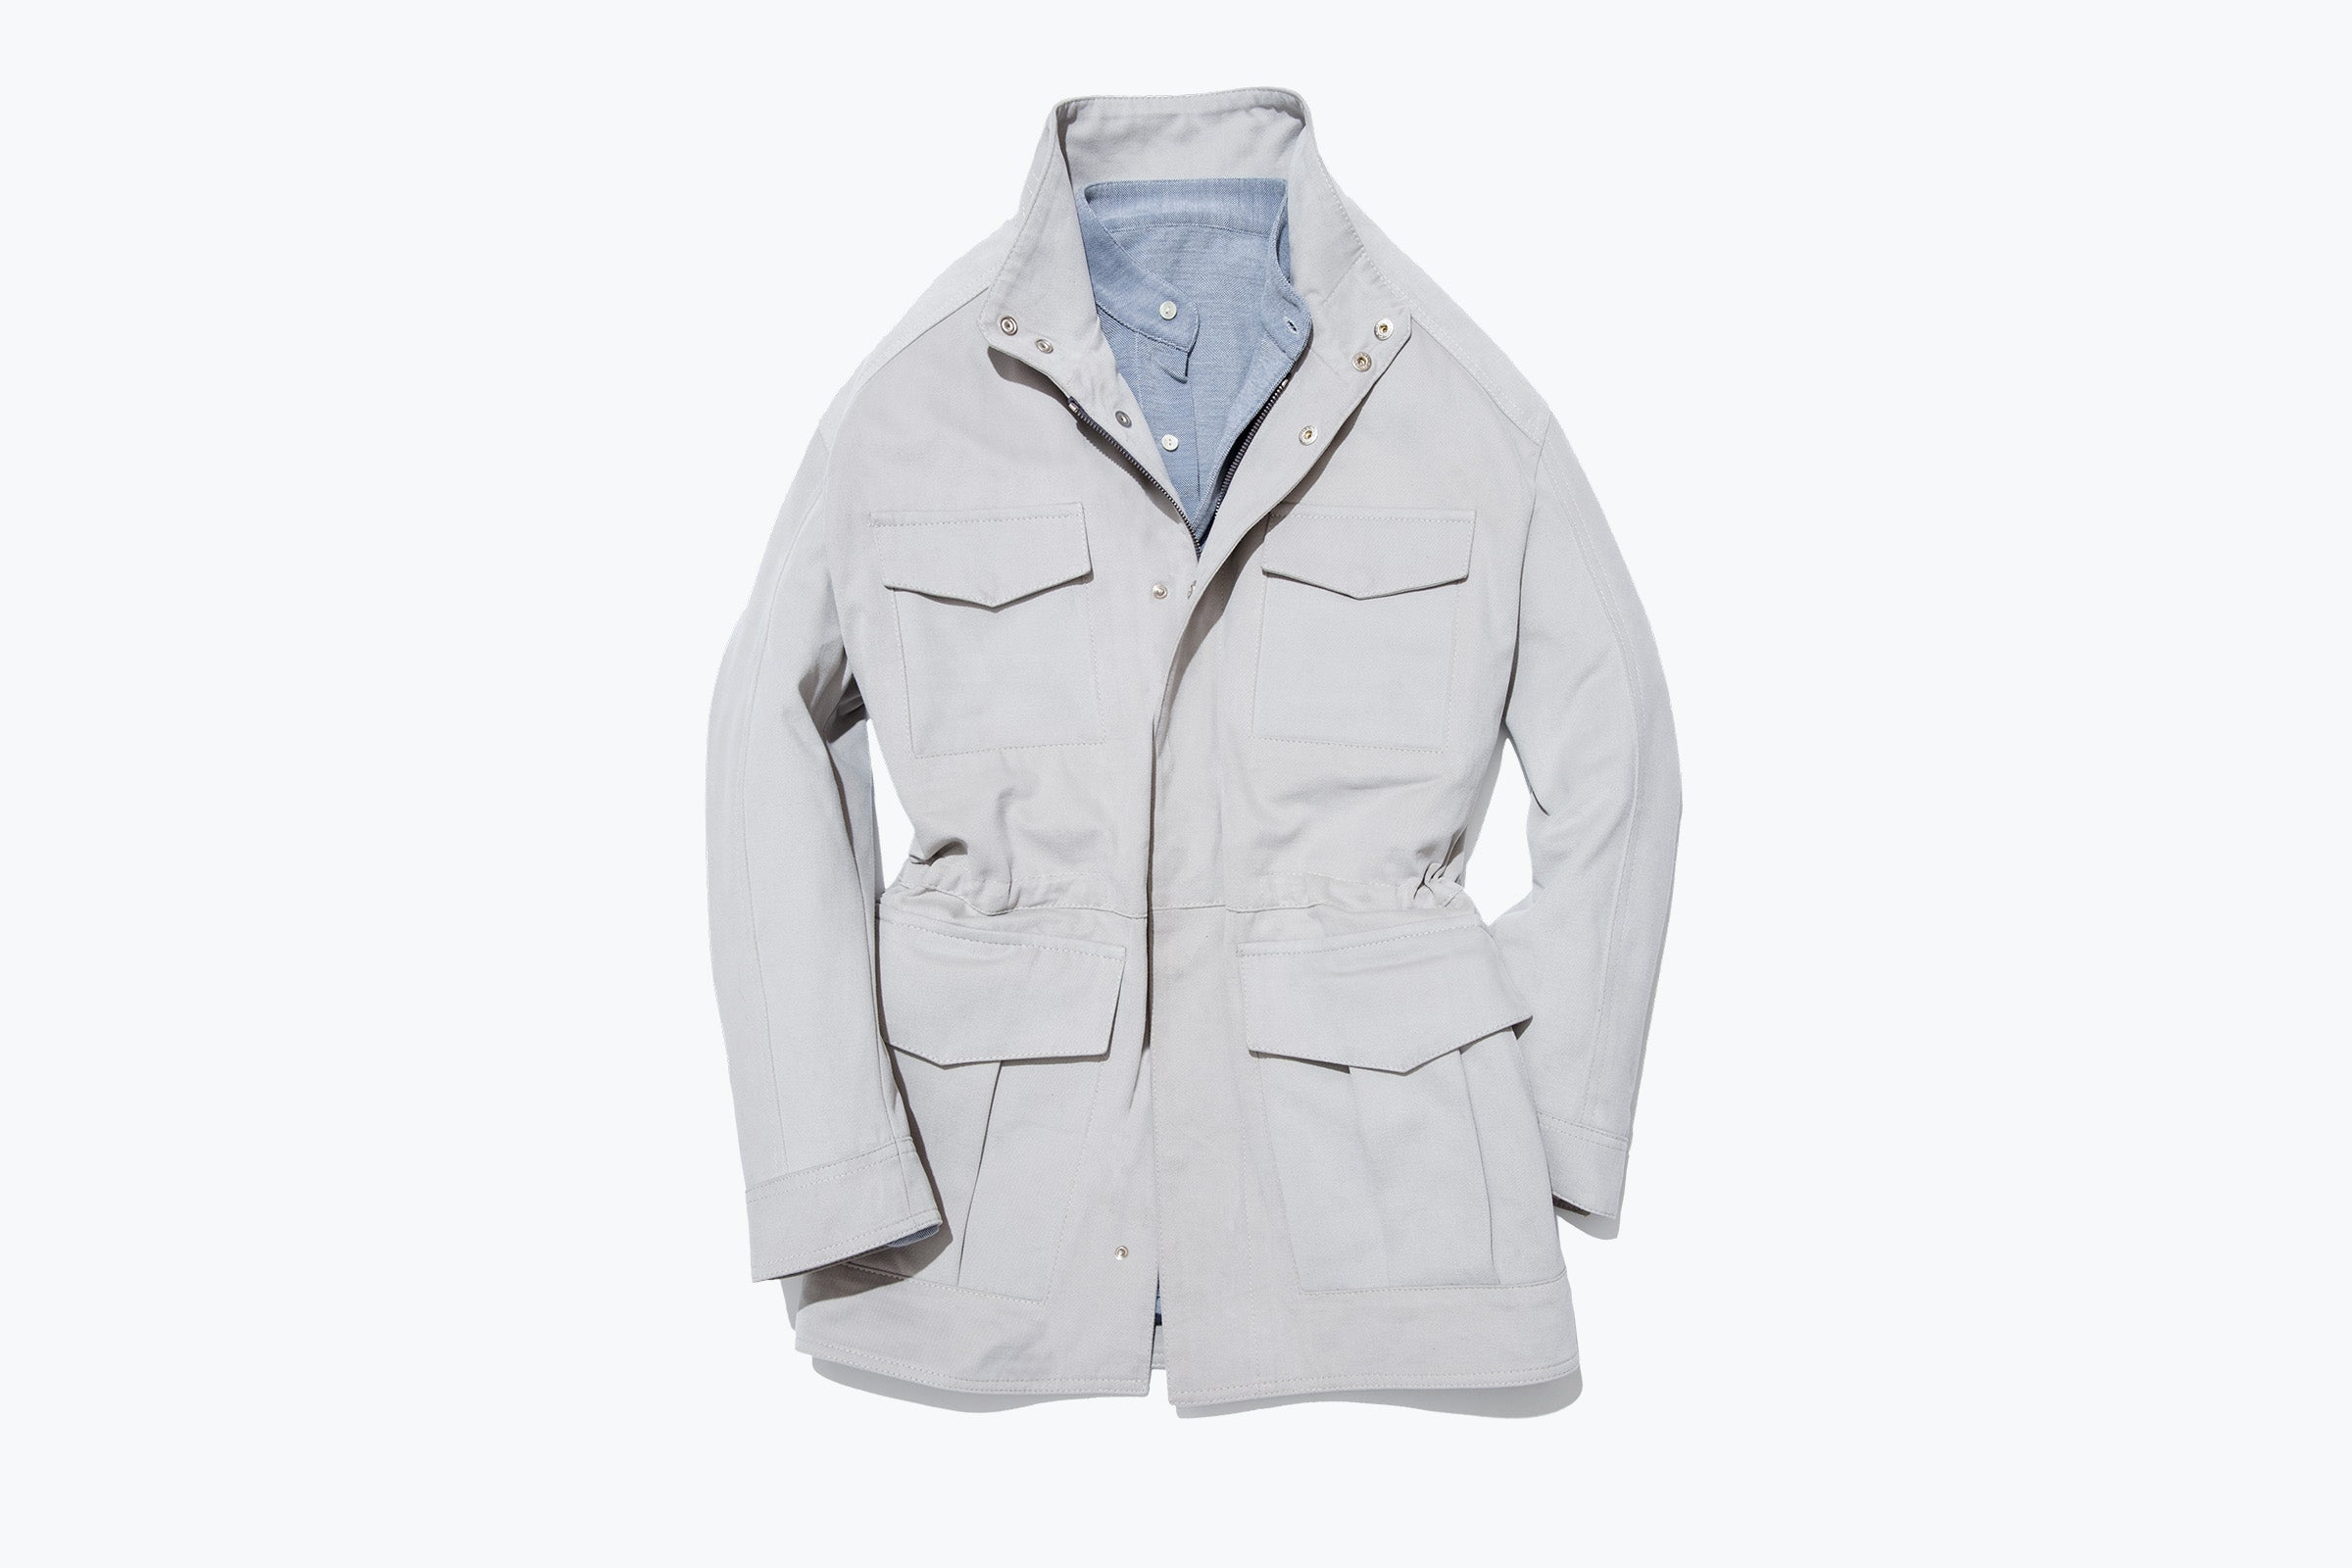 Outerwear - 003 - Field Jacket